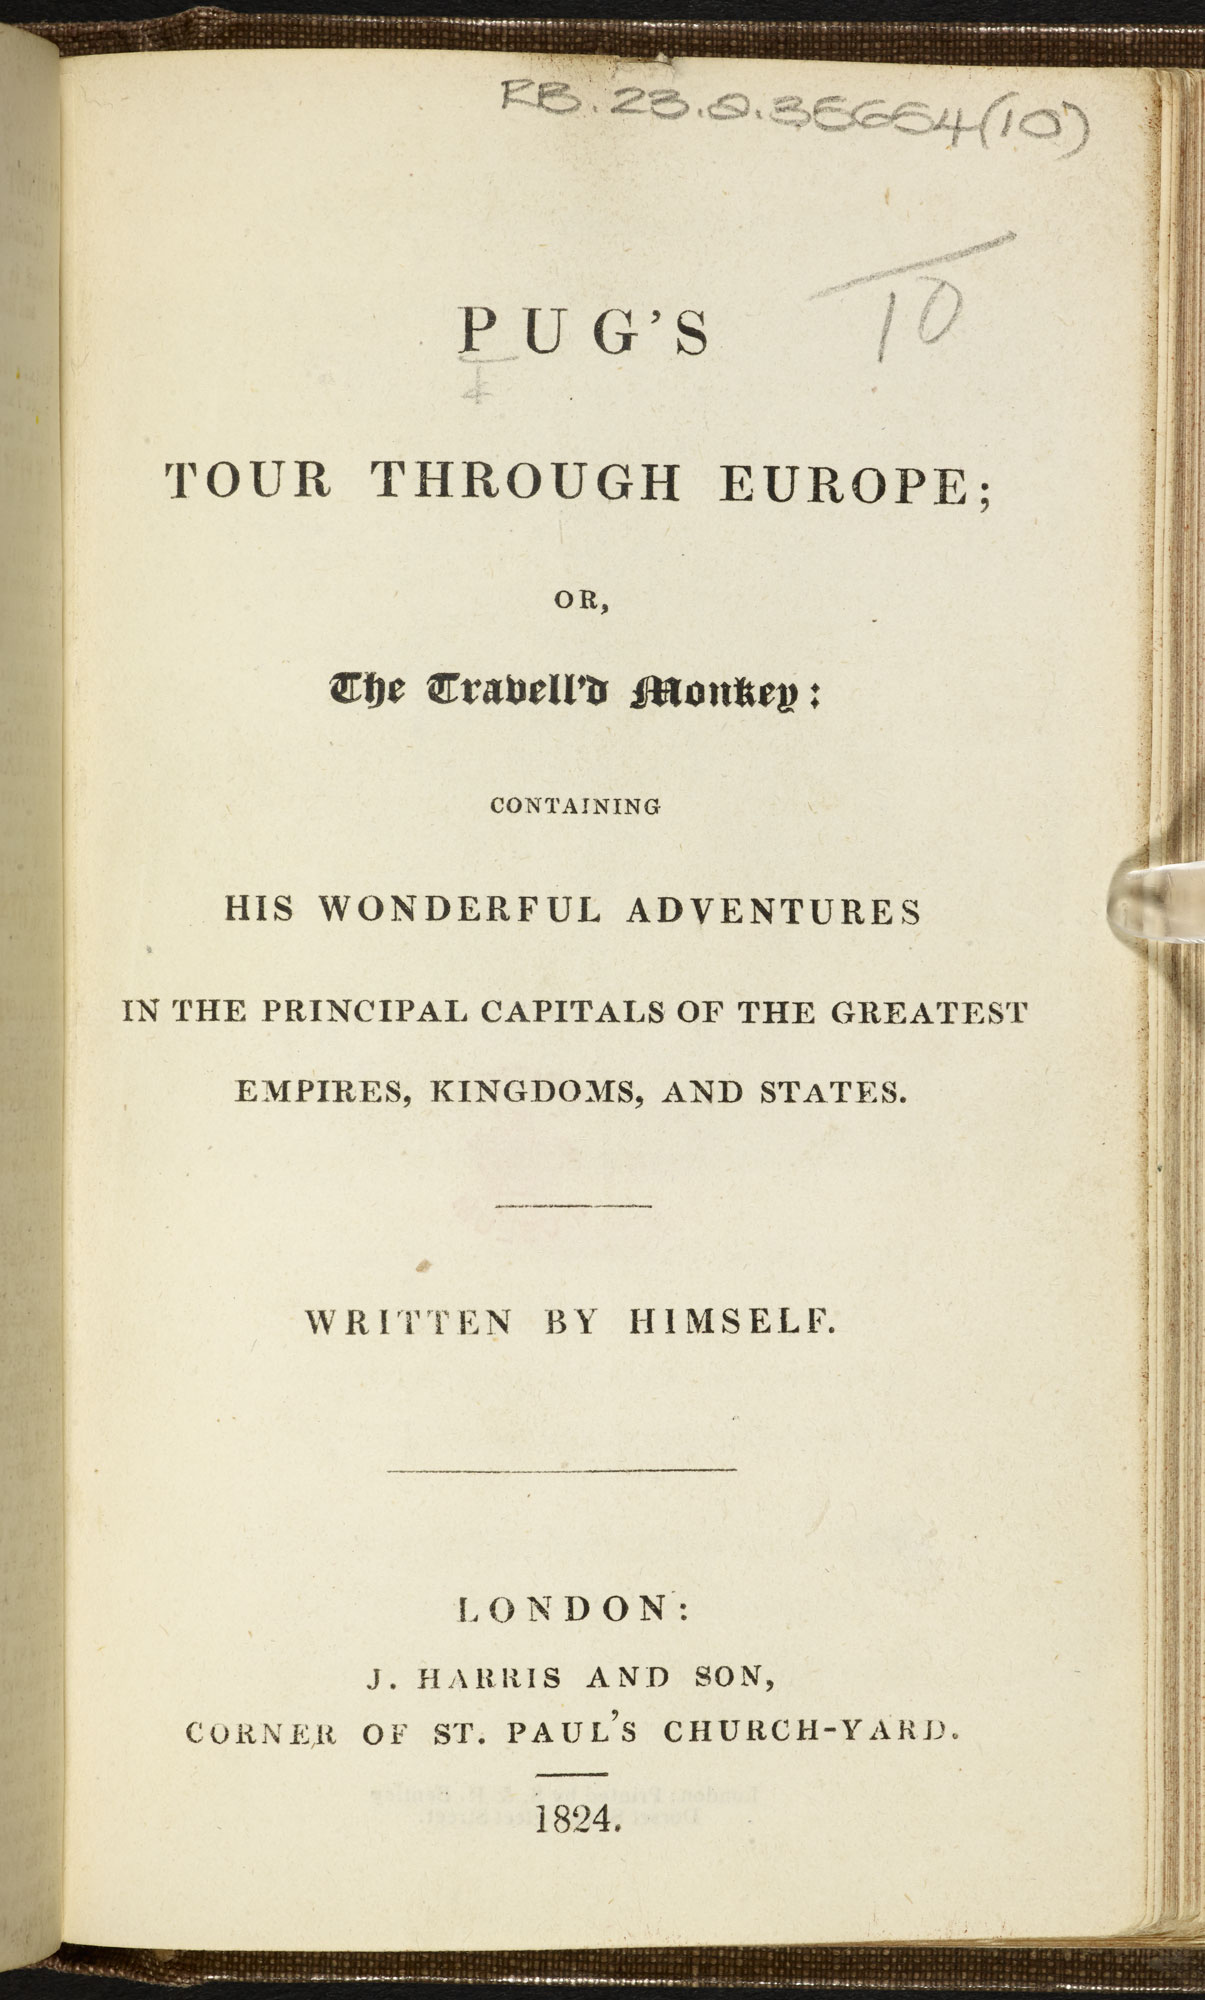 Pug's Tour through Europe [page: title page]